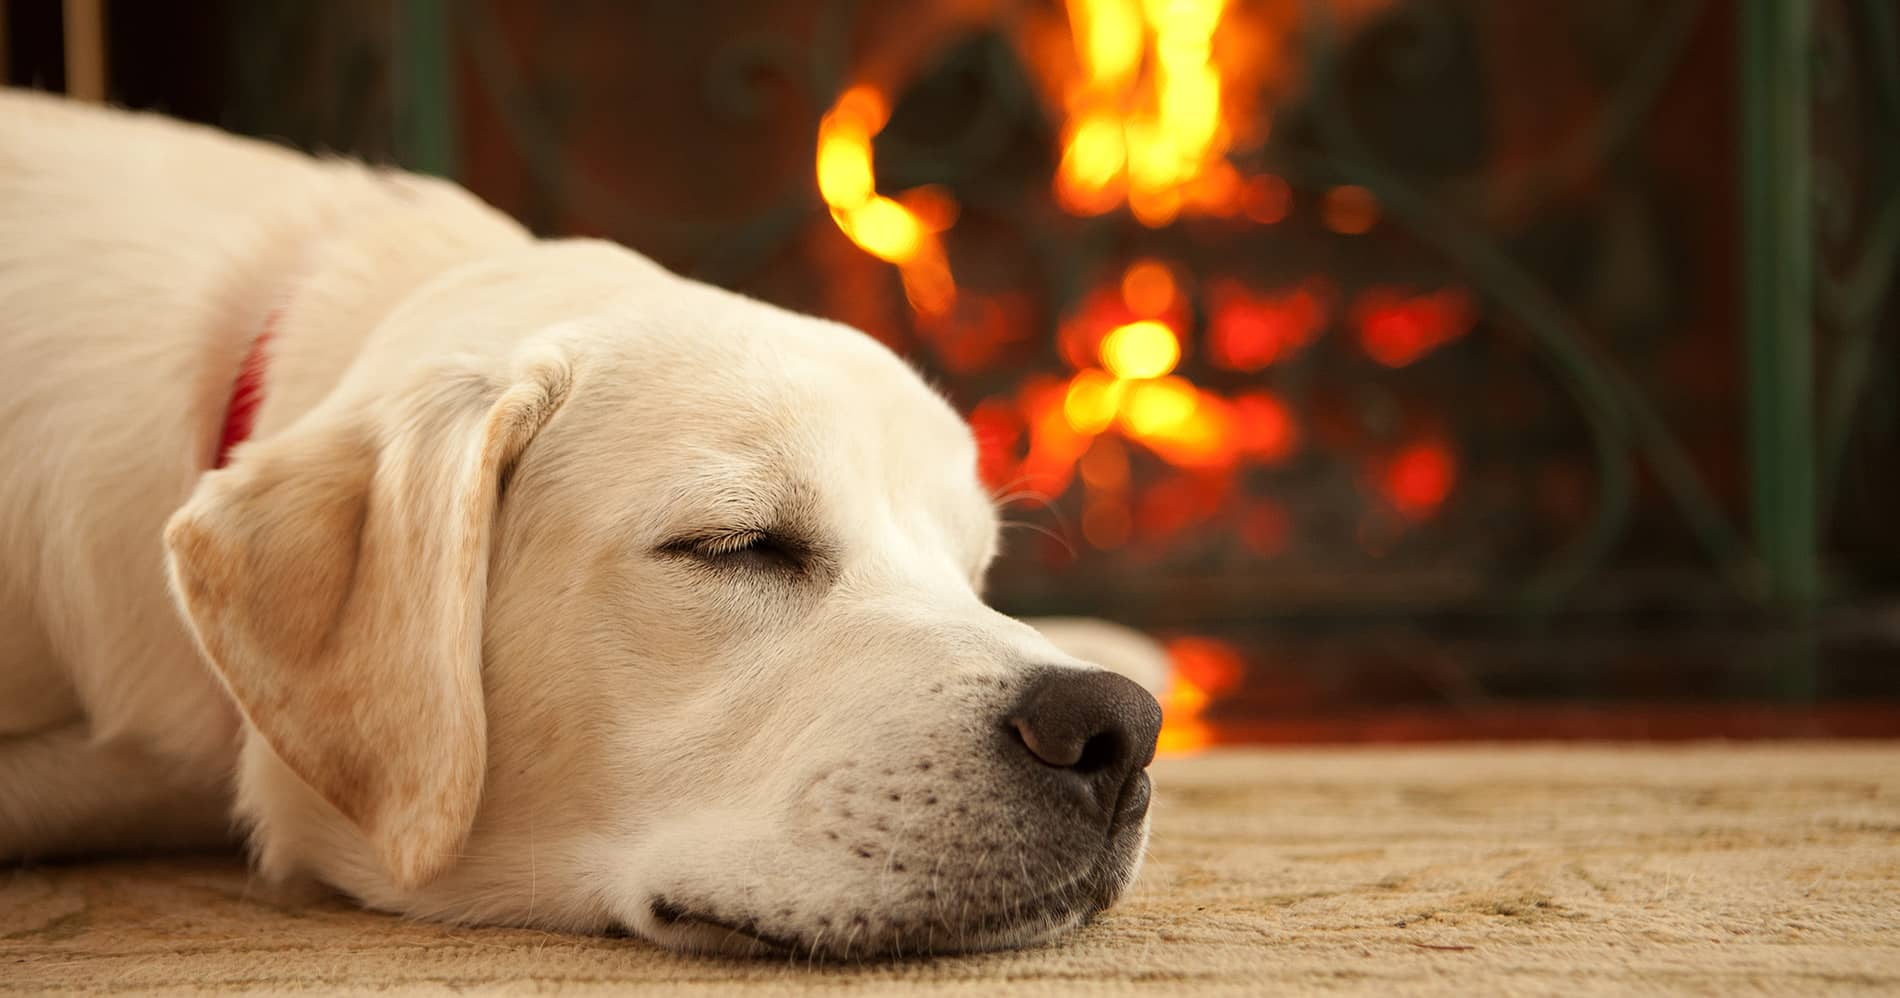 Crown Pointe dog sleeping by the fire